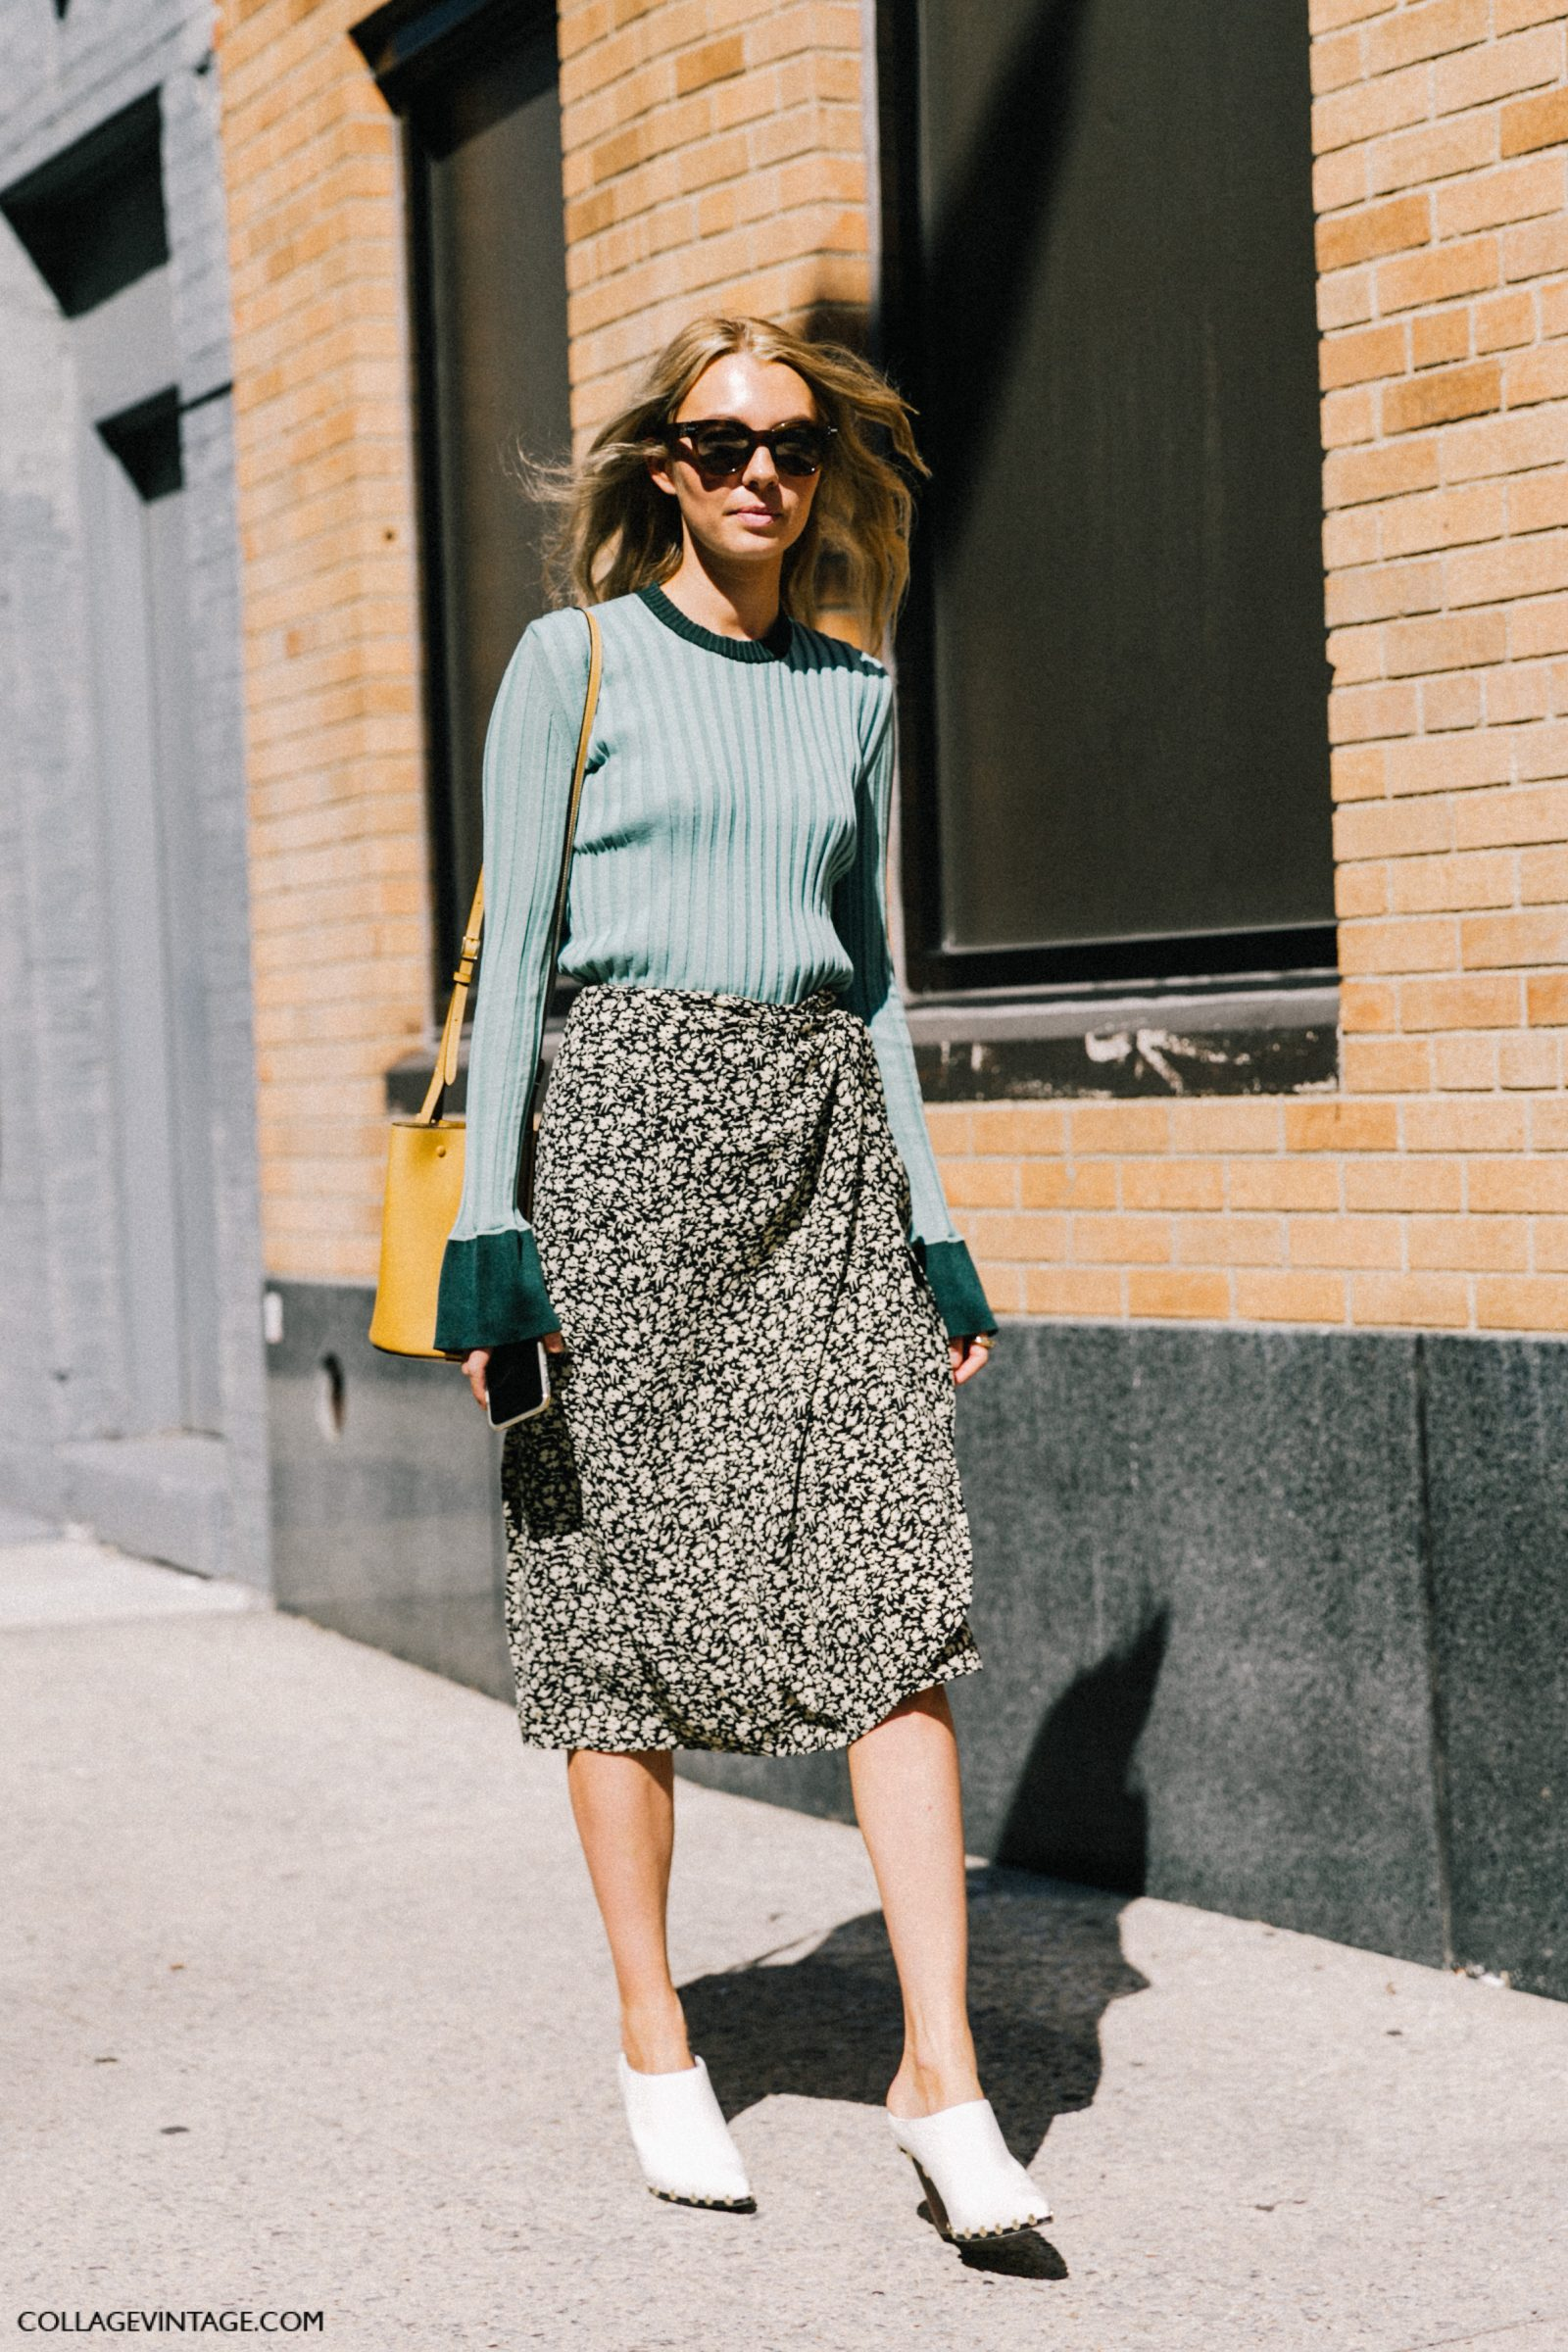 nyfw-new_york_fashion_week_ss17-street_style-outfits-collage_vintage-vintage-phillip_lim-the-row-proenza_schouler-rossie_aussolin-298